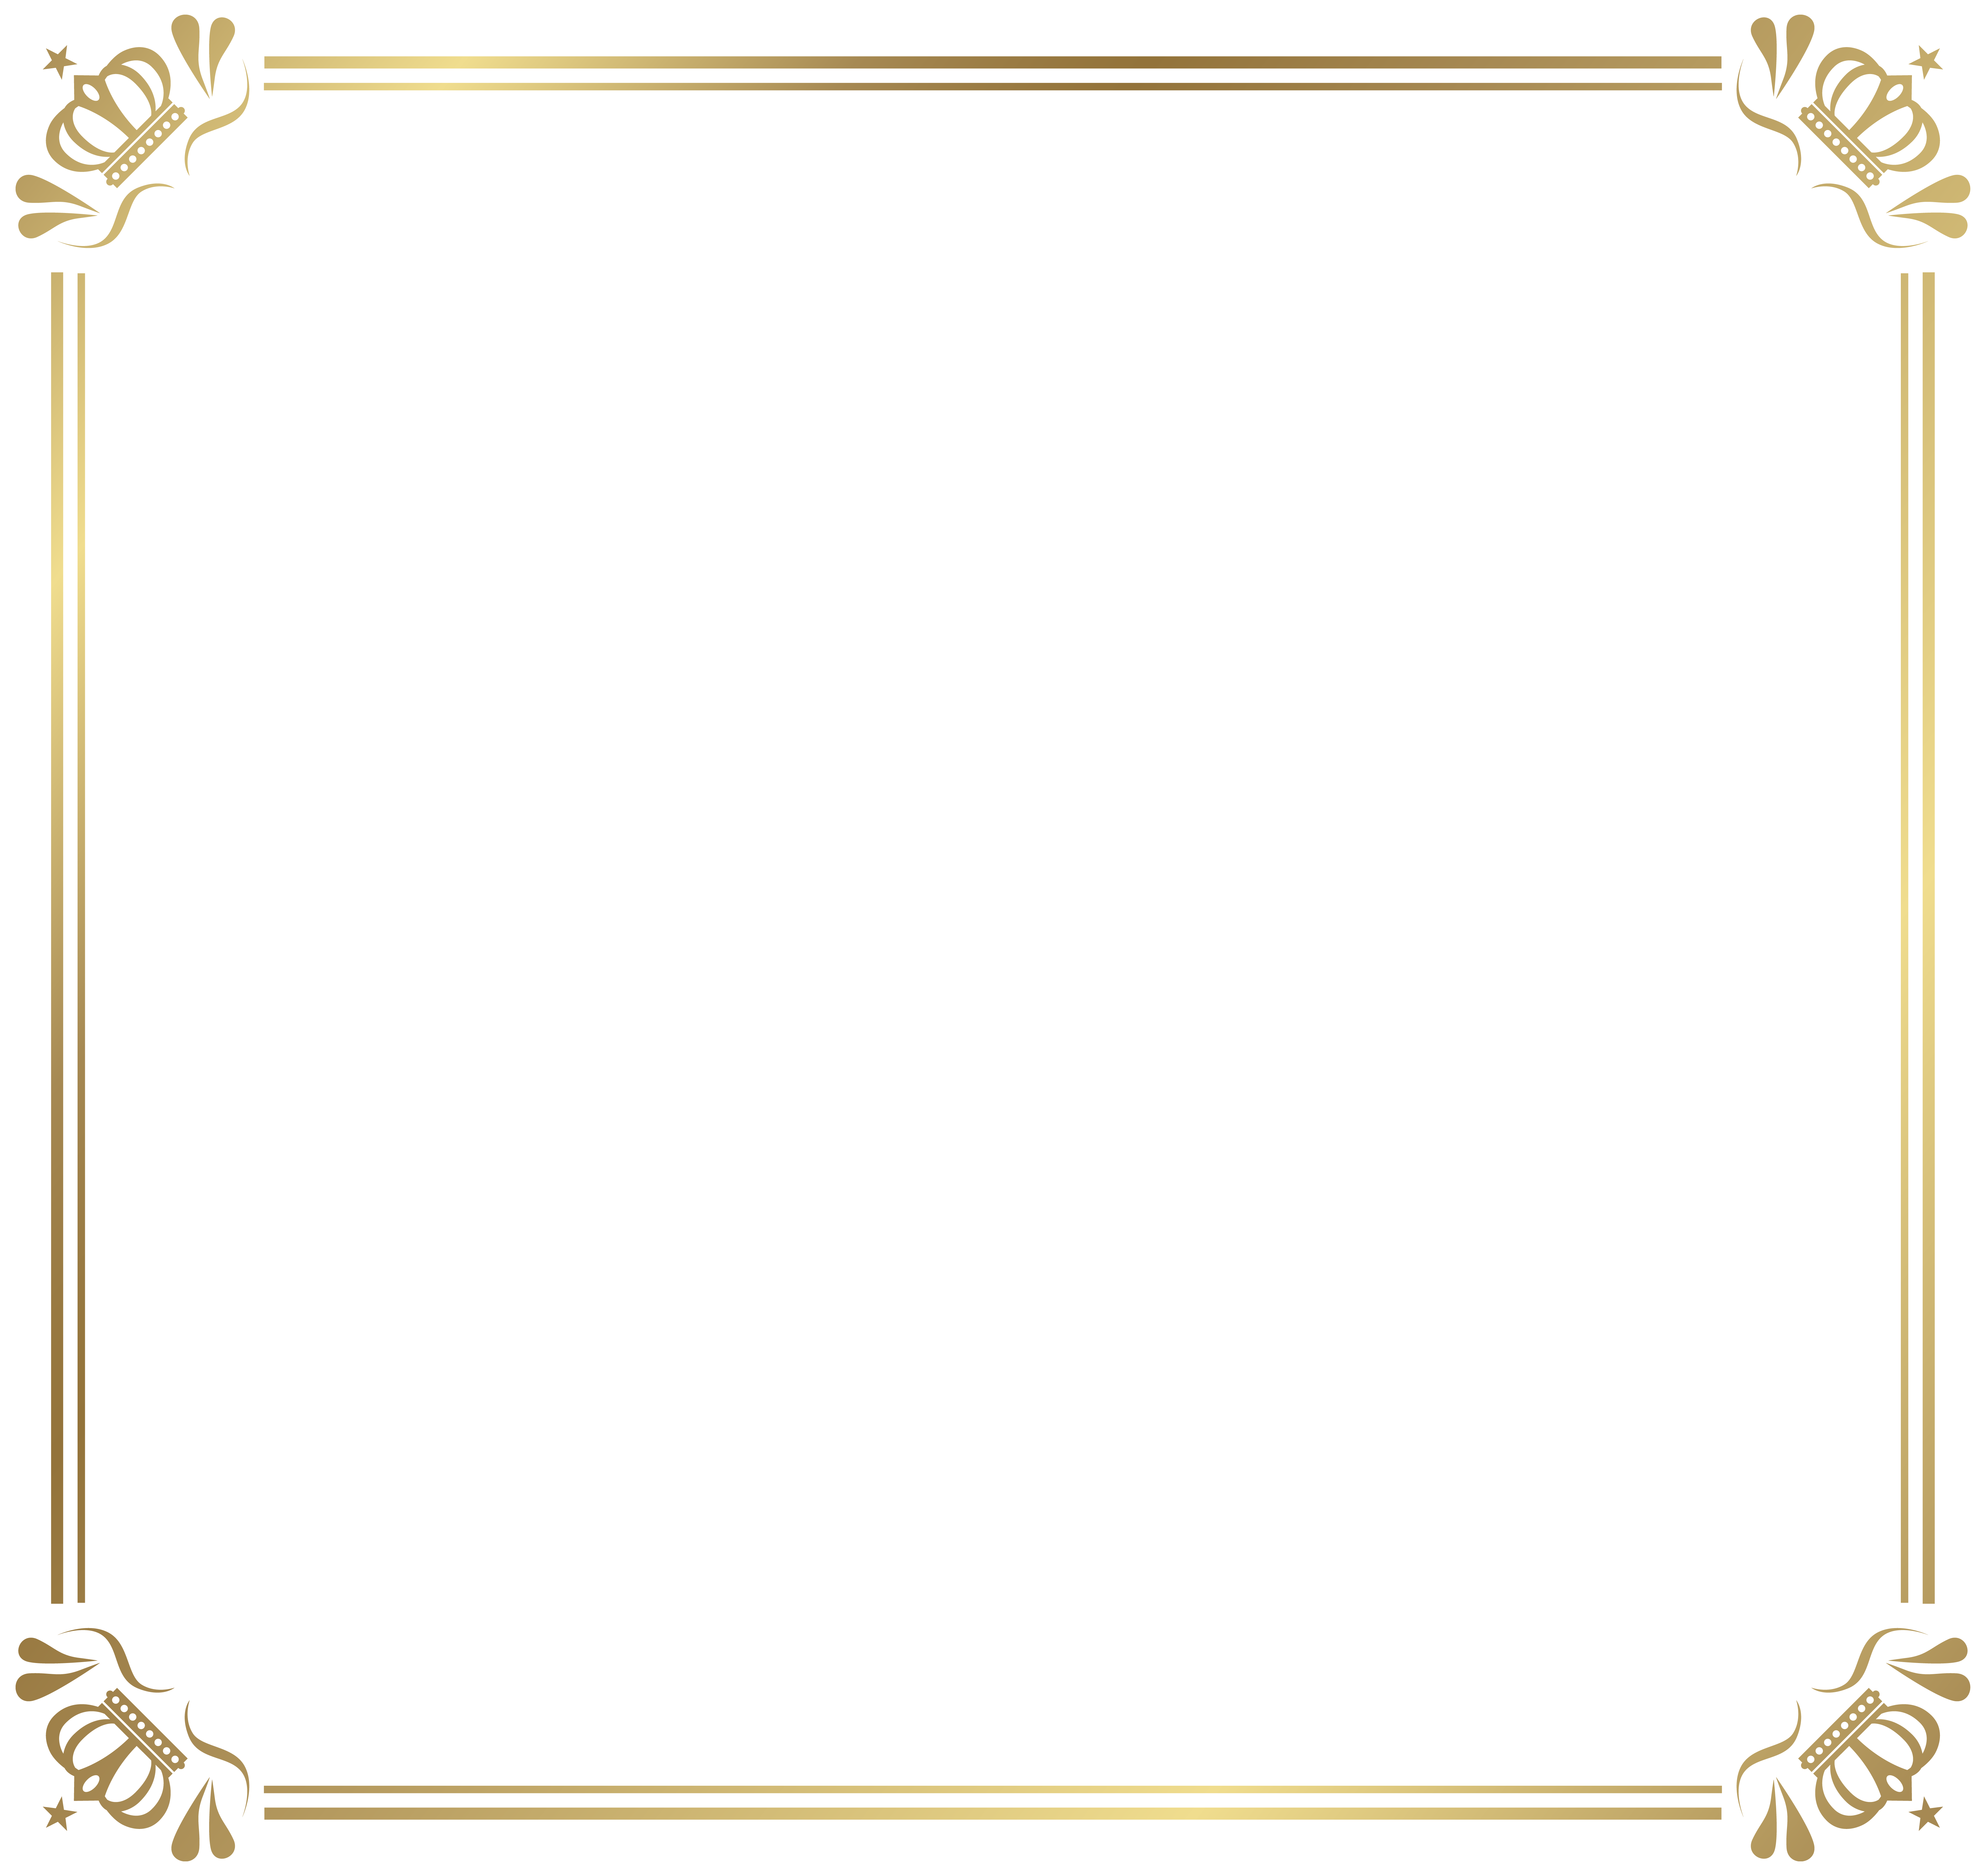 Frame Border With Crowns Png Image Gallery Yopriceville